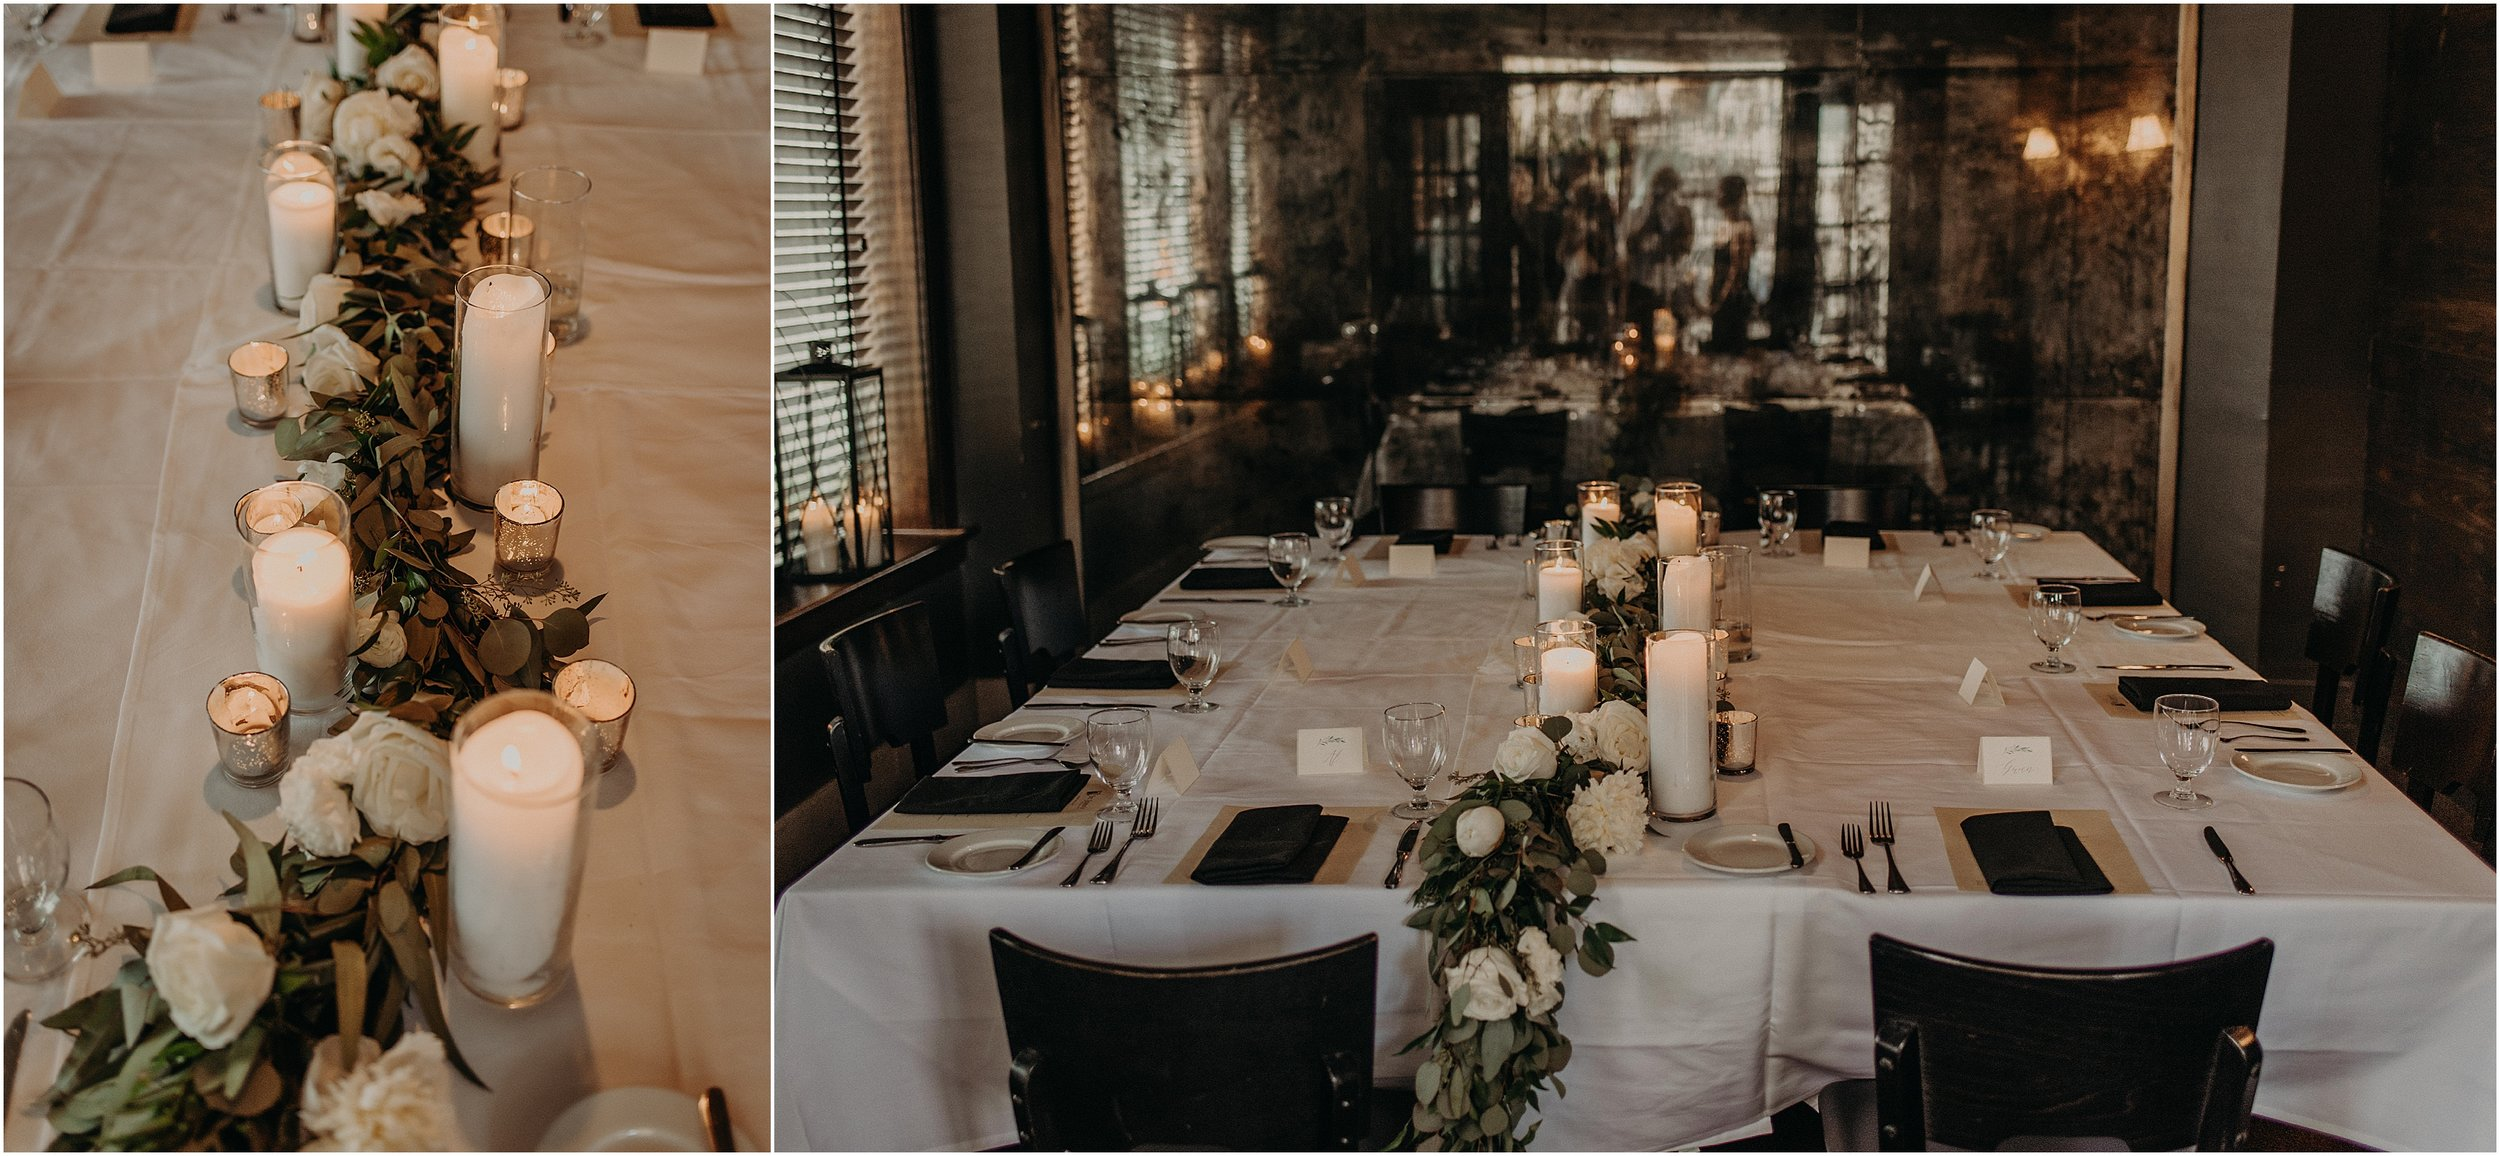 Intimate shared tablescape for the family and guests at St. John's Restuarant